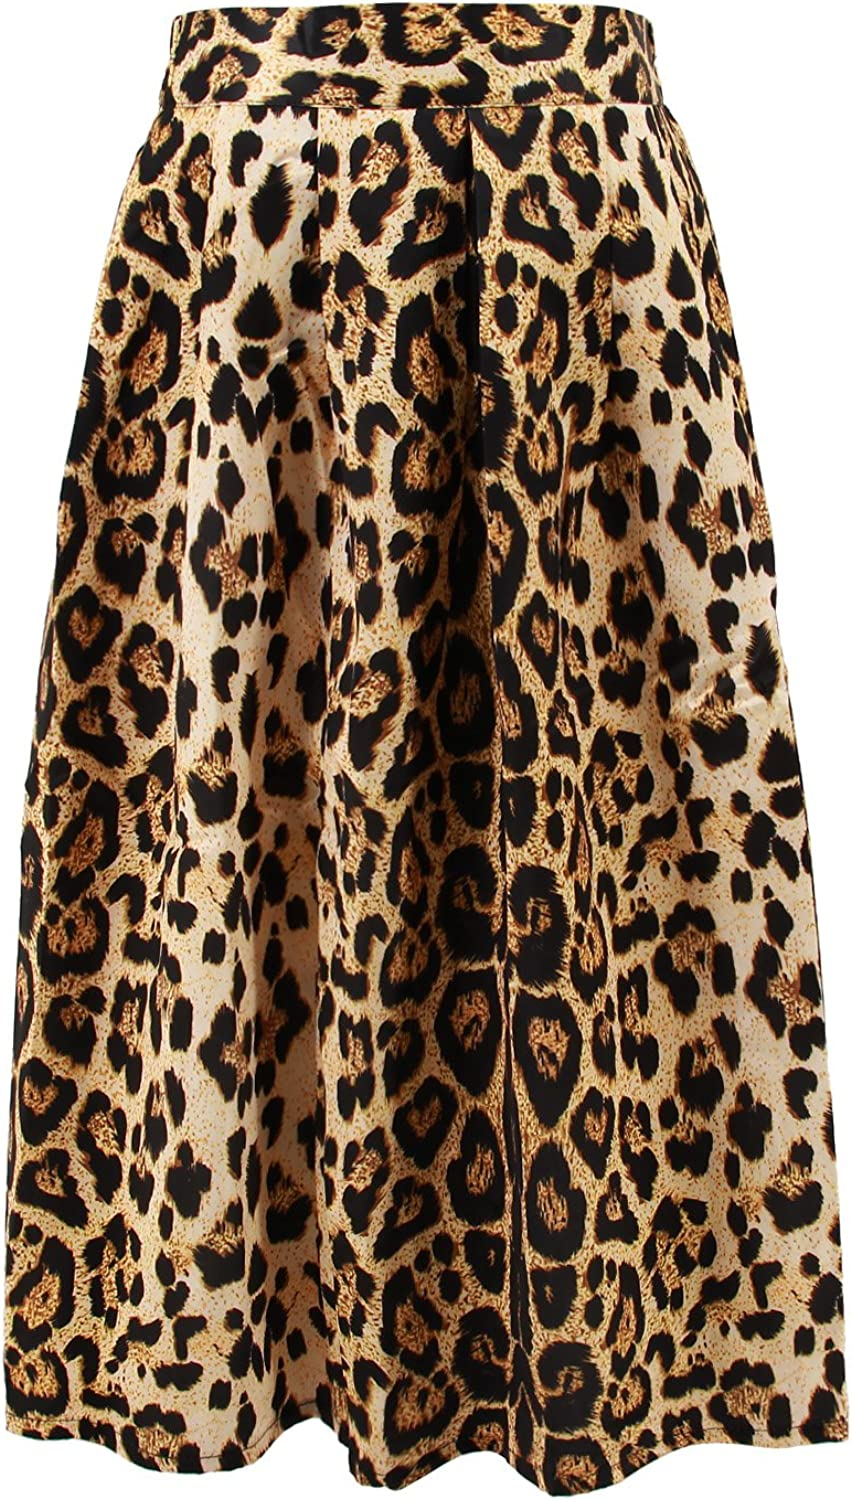 Hoohu Women's Vintage Fashion Animal Tiger Leopard Print Pleated Umbrella High Elastic Waist ALine Midi Skirt Dress